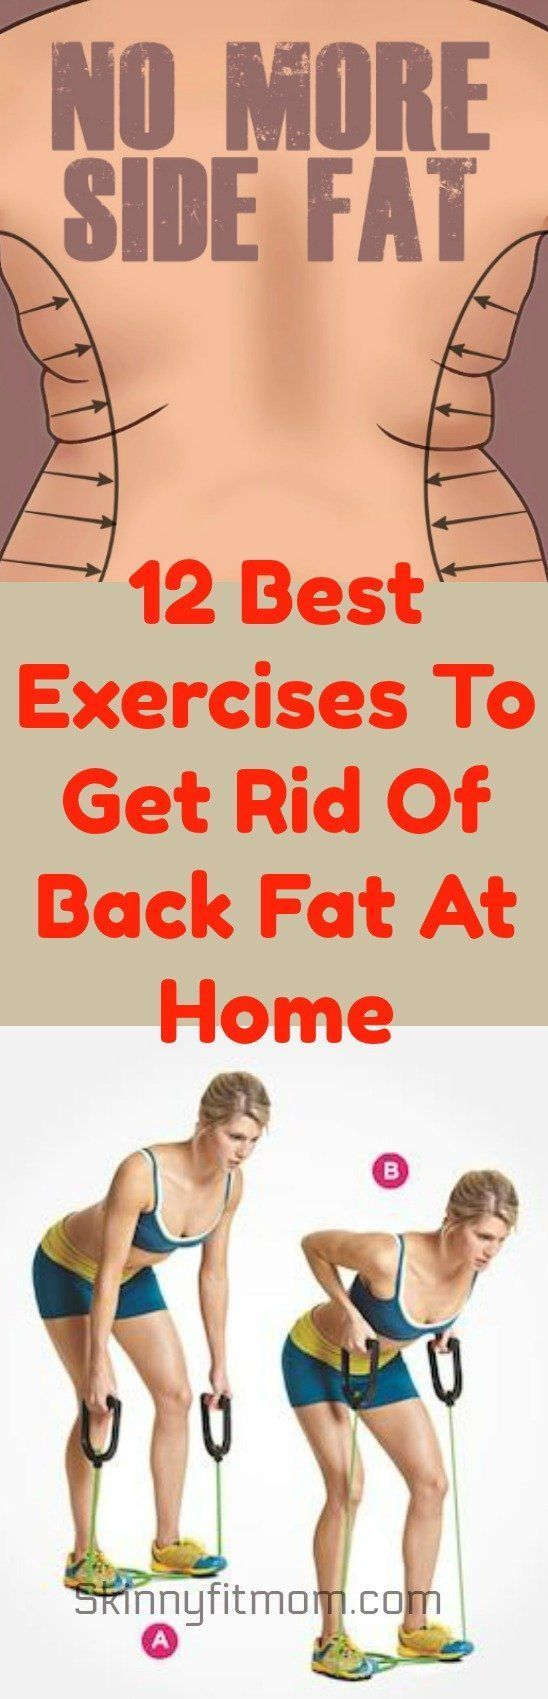 12 Best Exercises To Get Rid Of Back Fat At Home. Pinned over 5k times